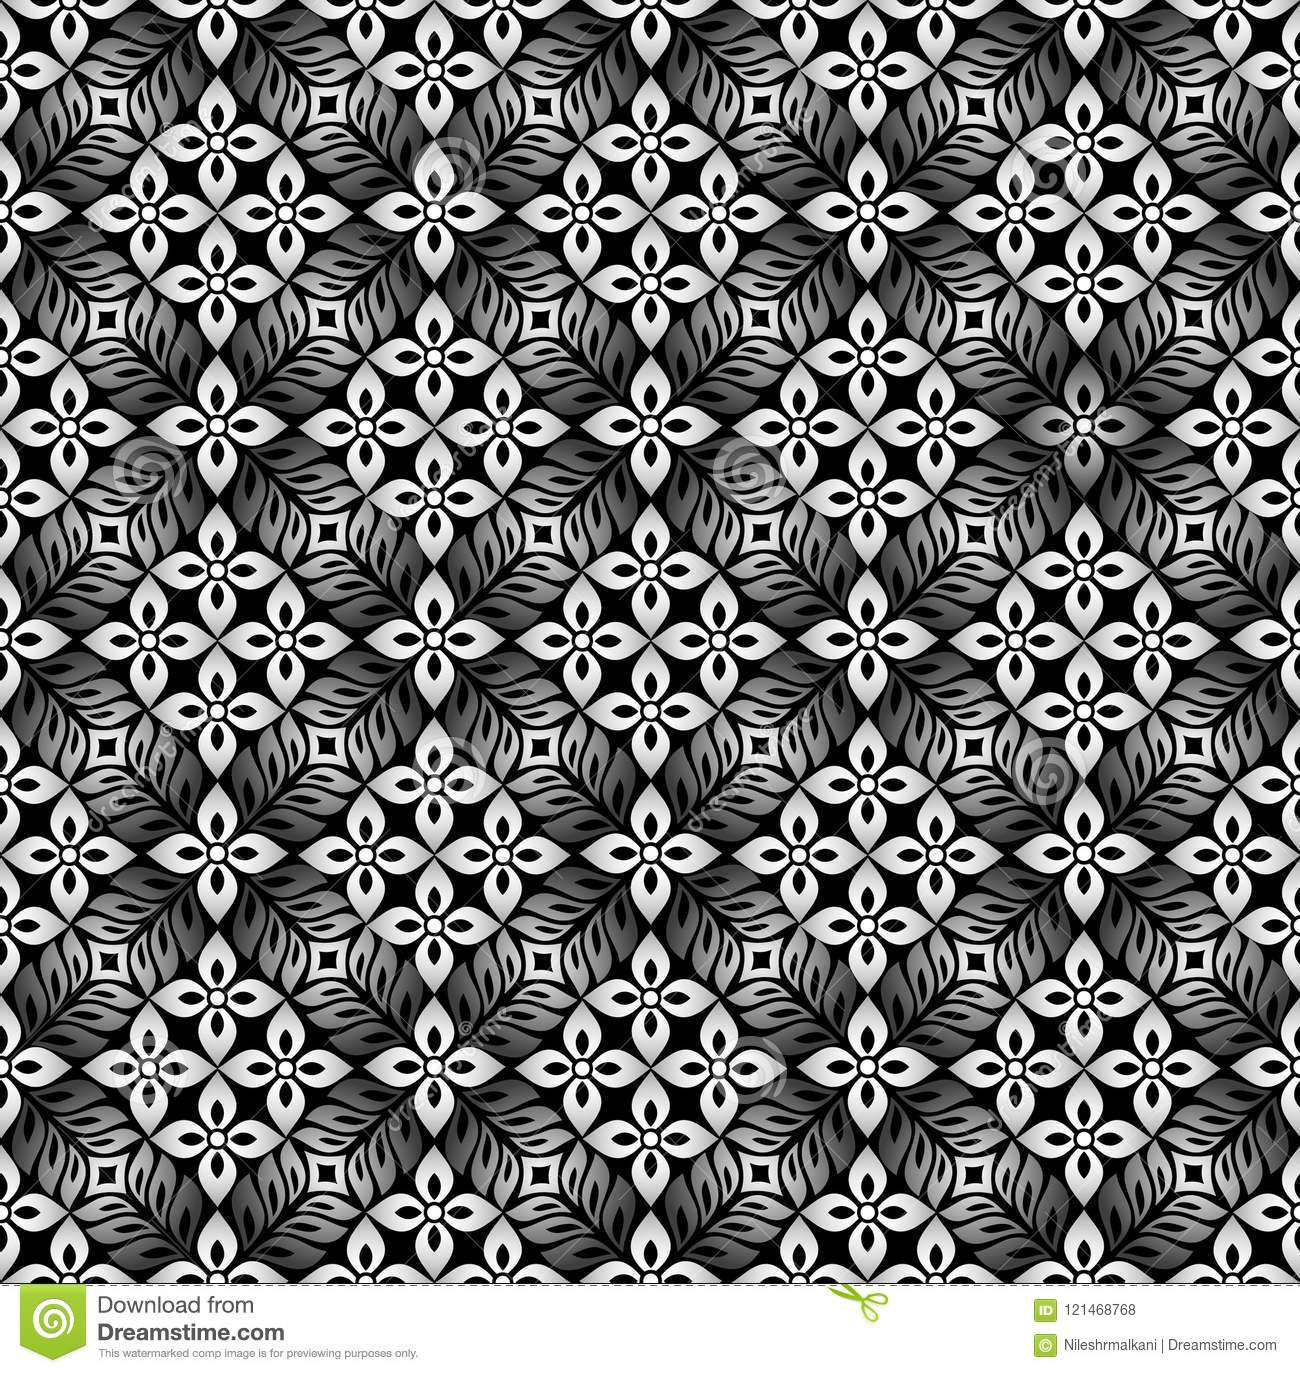 Damask Royal Dark Floral Wallpaper Stock Vector Illustration Of